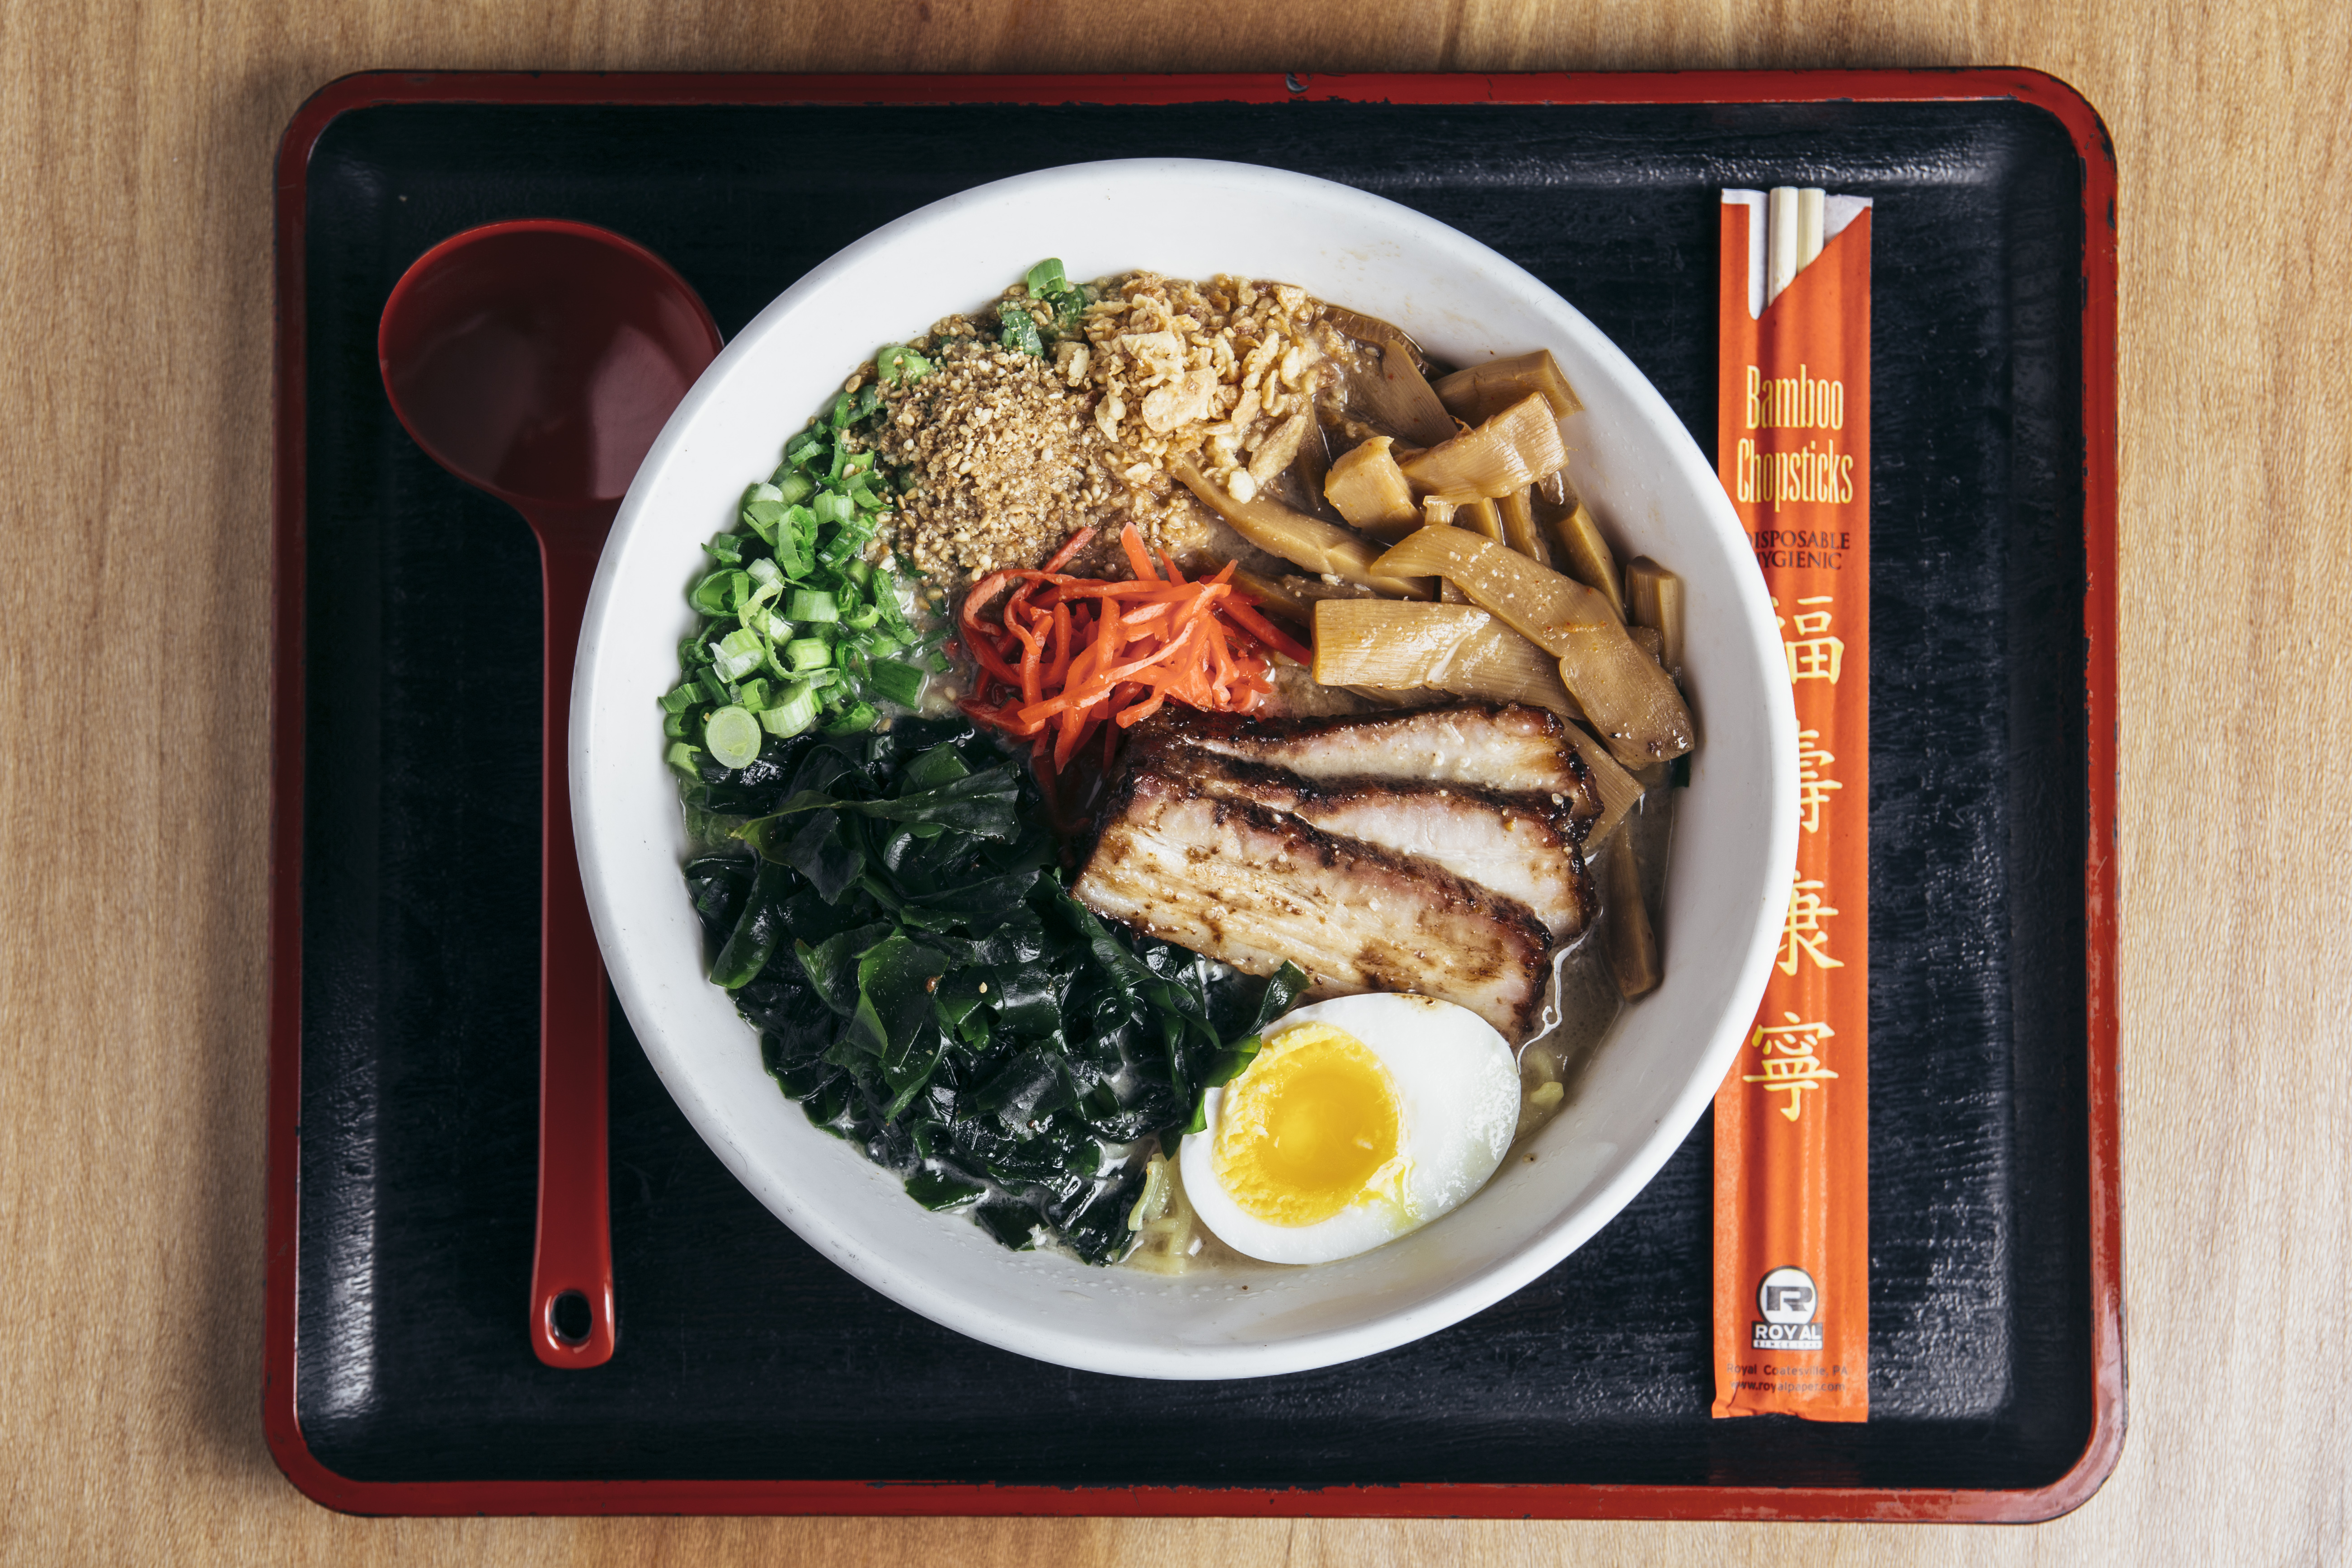 A white bowl filled with ramen noodles, soup, green vegetables, slices of pork, and a boiled egg sits on a black tray. A red soup spoon and chopsticks sit beside it.